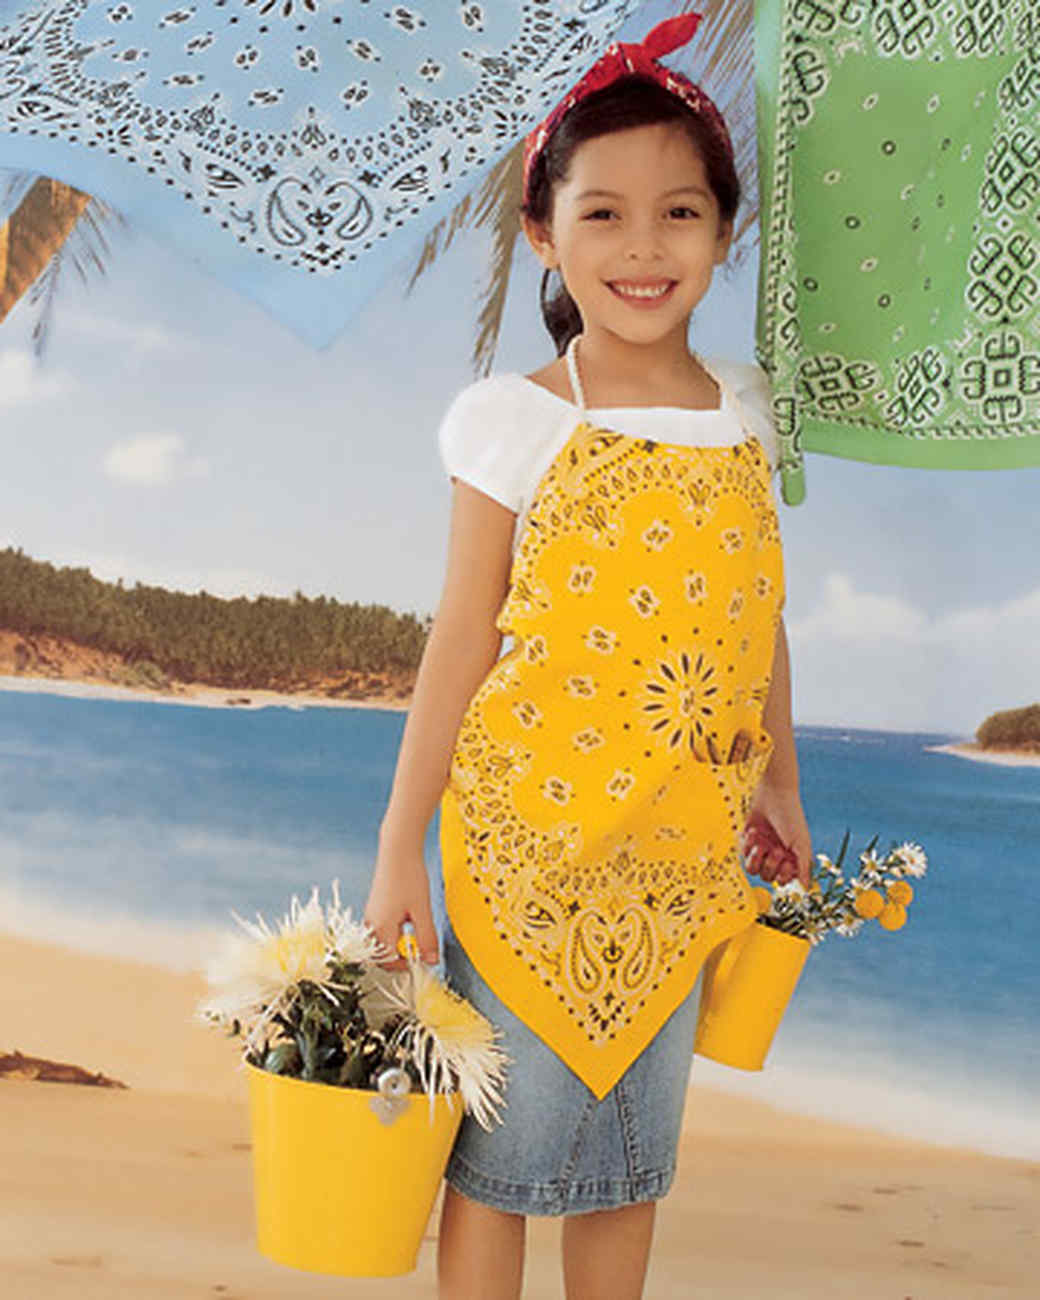 Bandanna Clothing Crafts: Beachcomber Apron and Necktie